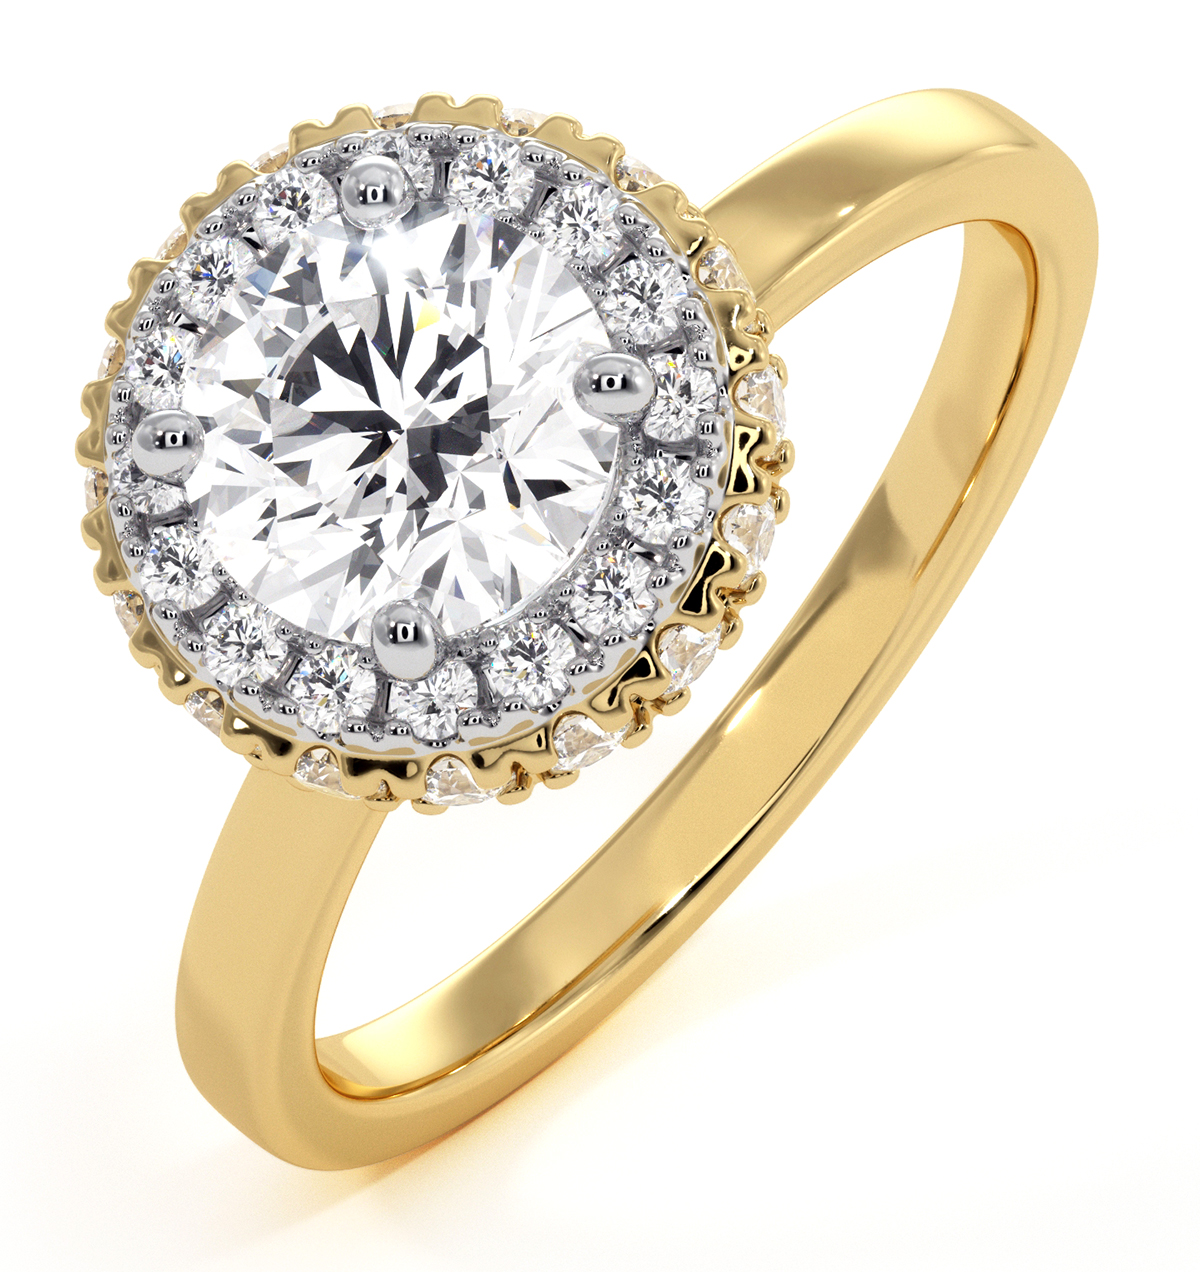 Eleanor GIA Diamond Halo Engagement Ring in 18K Gold 1.23ct G/VS1 - image 1